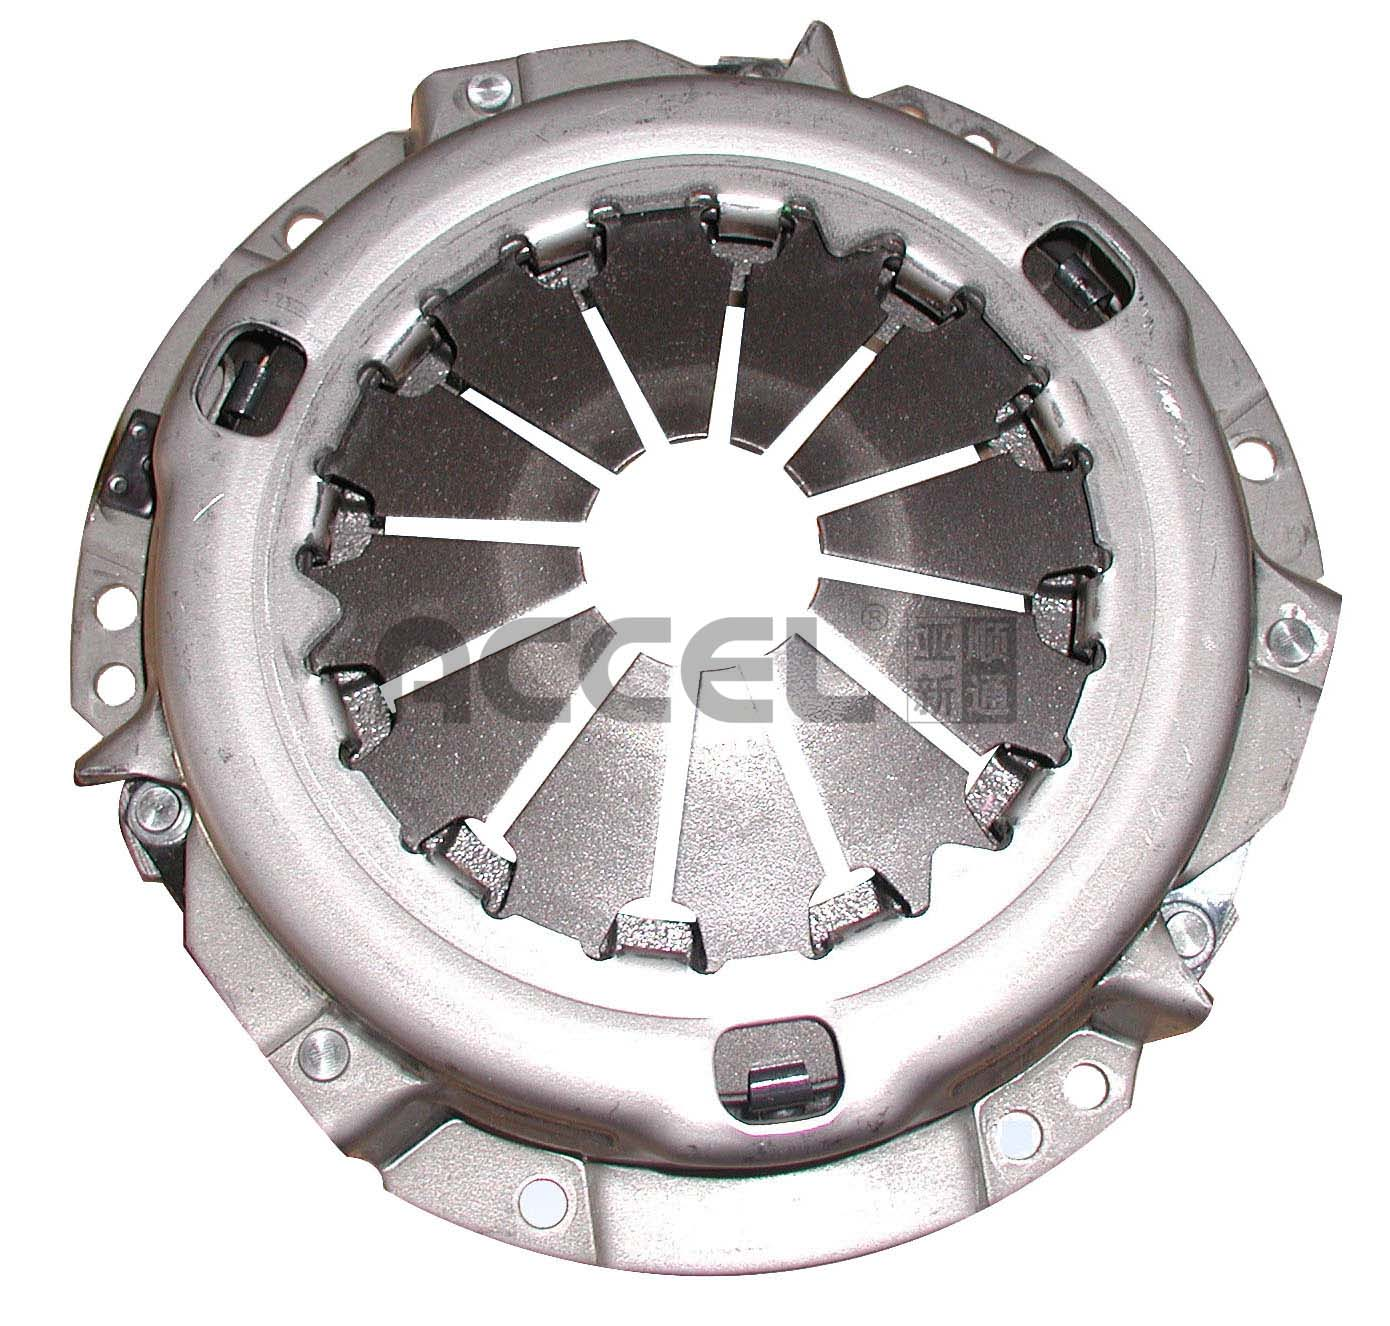 Clutch Cover/OE:31210-12180/200*140*237/CTY-005/TOYOTA/LY324/CT-014